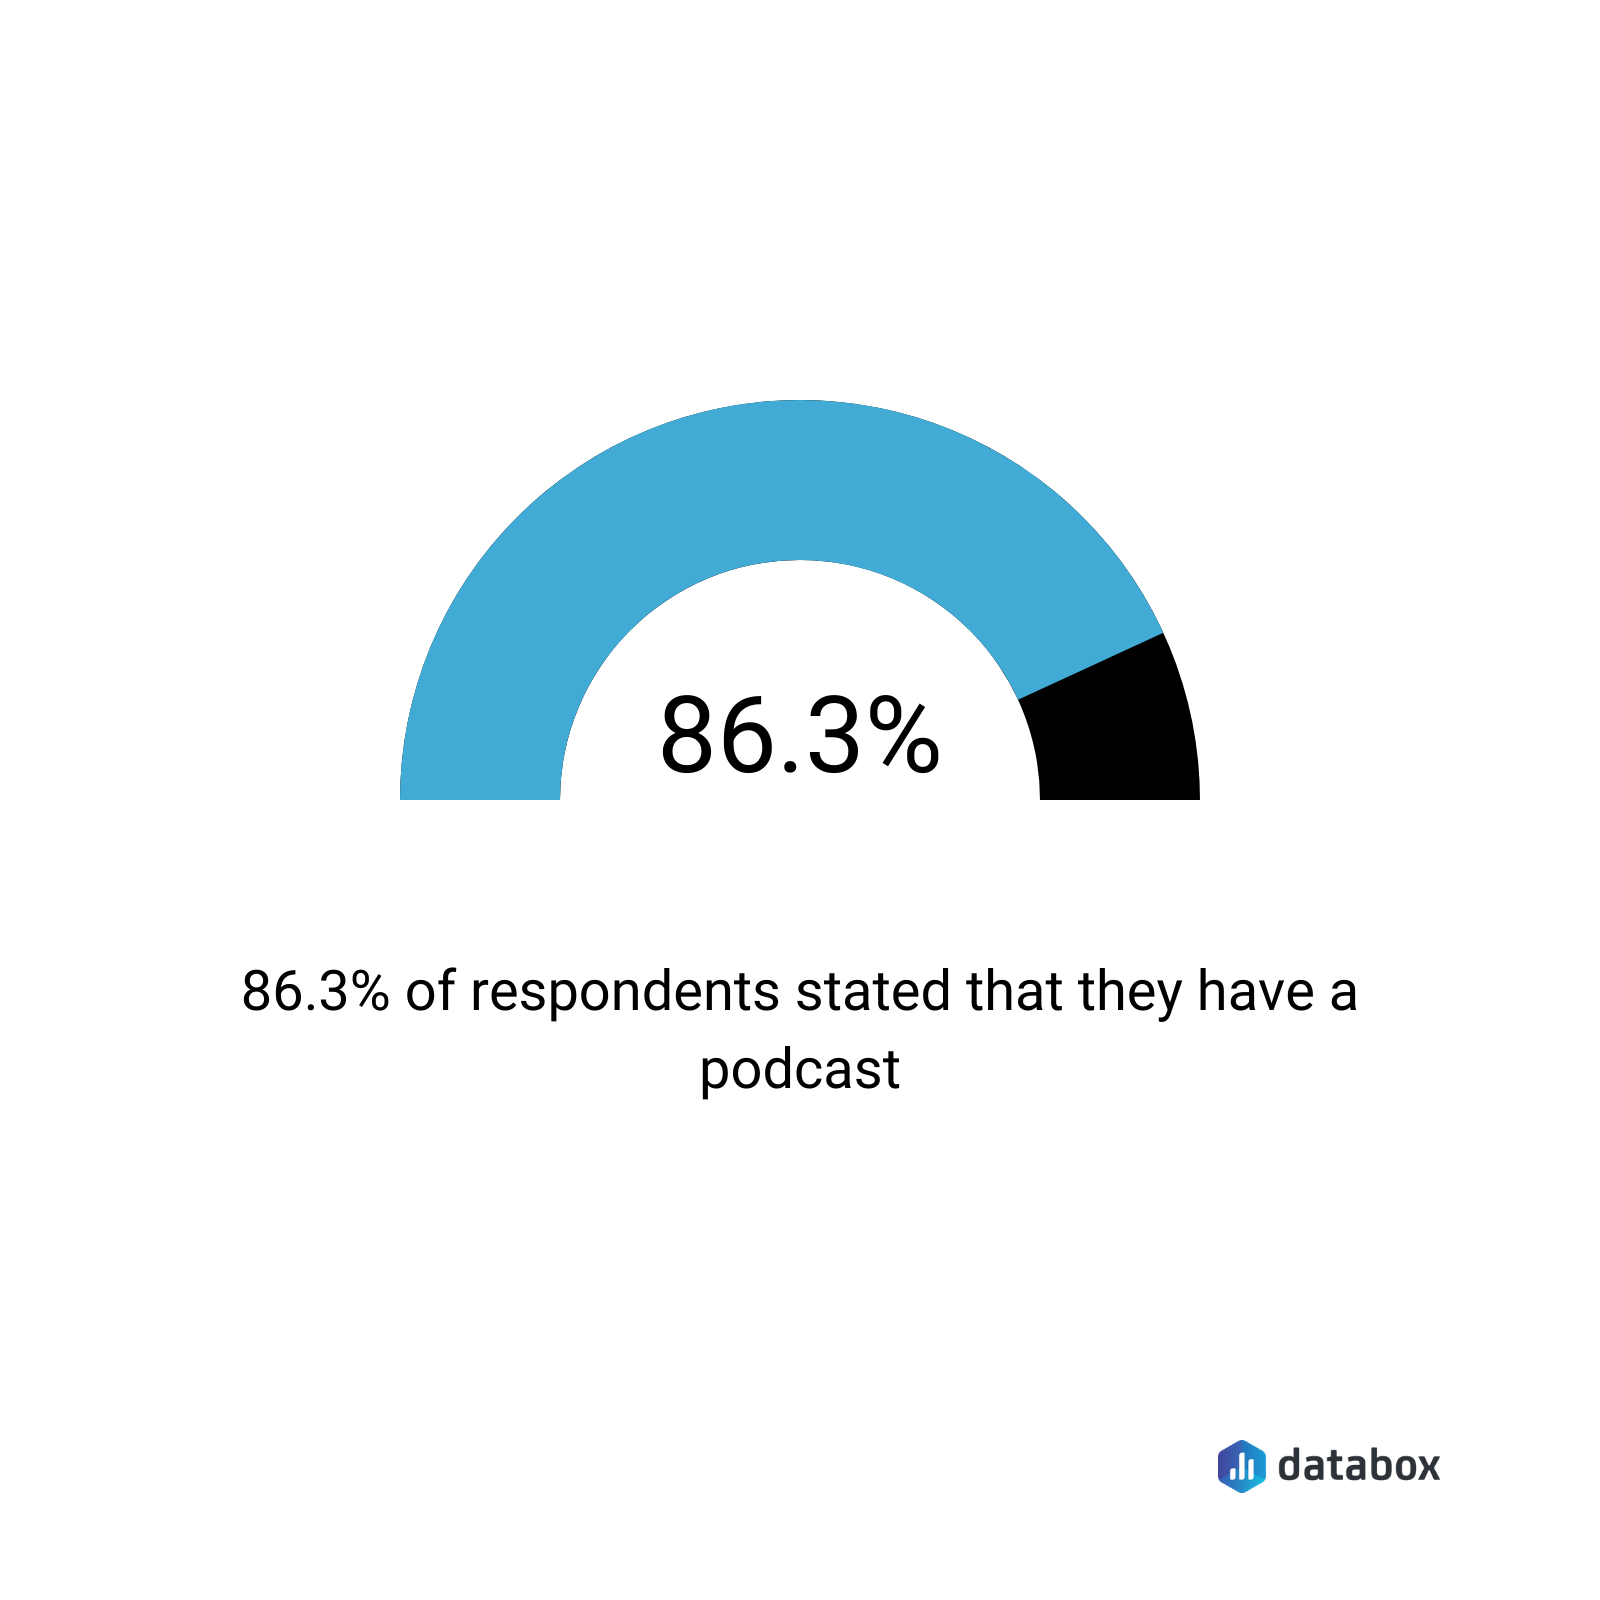 86.3% stated they have a podcast